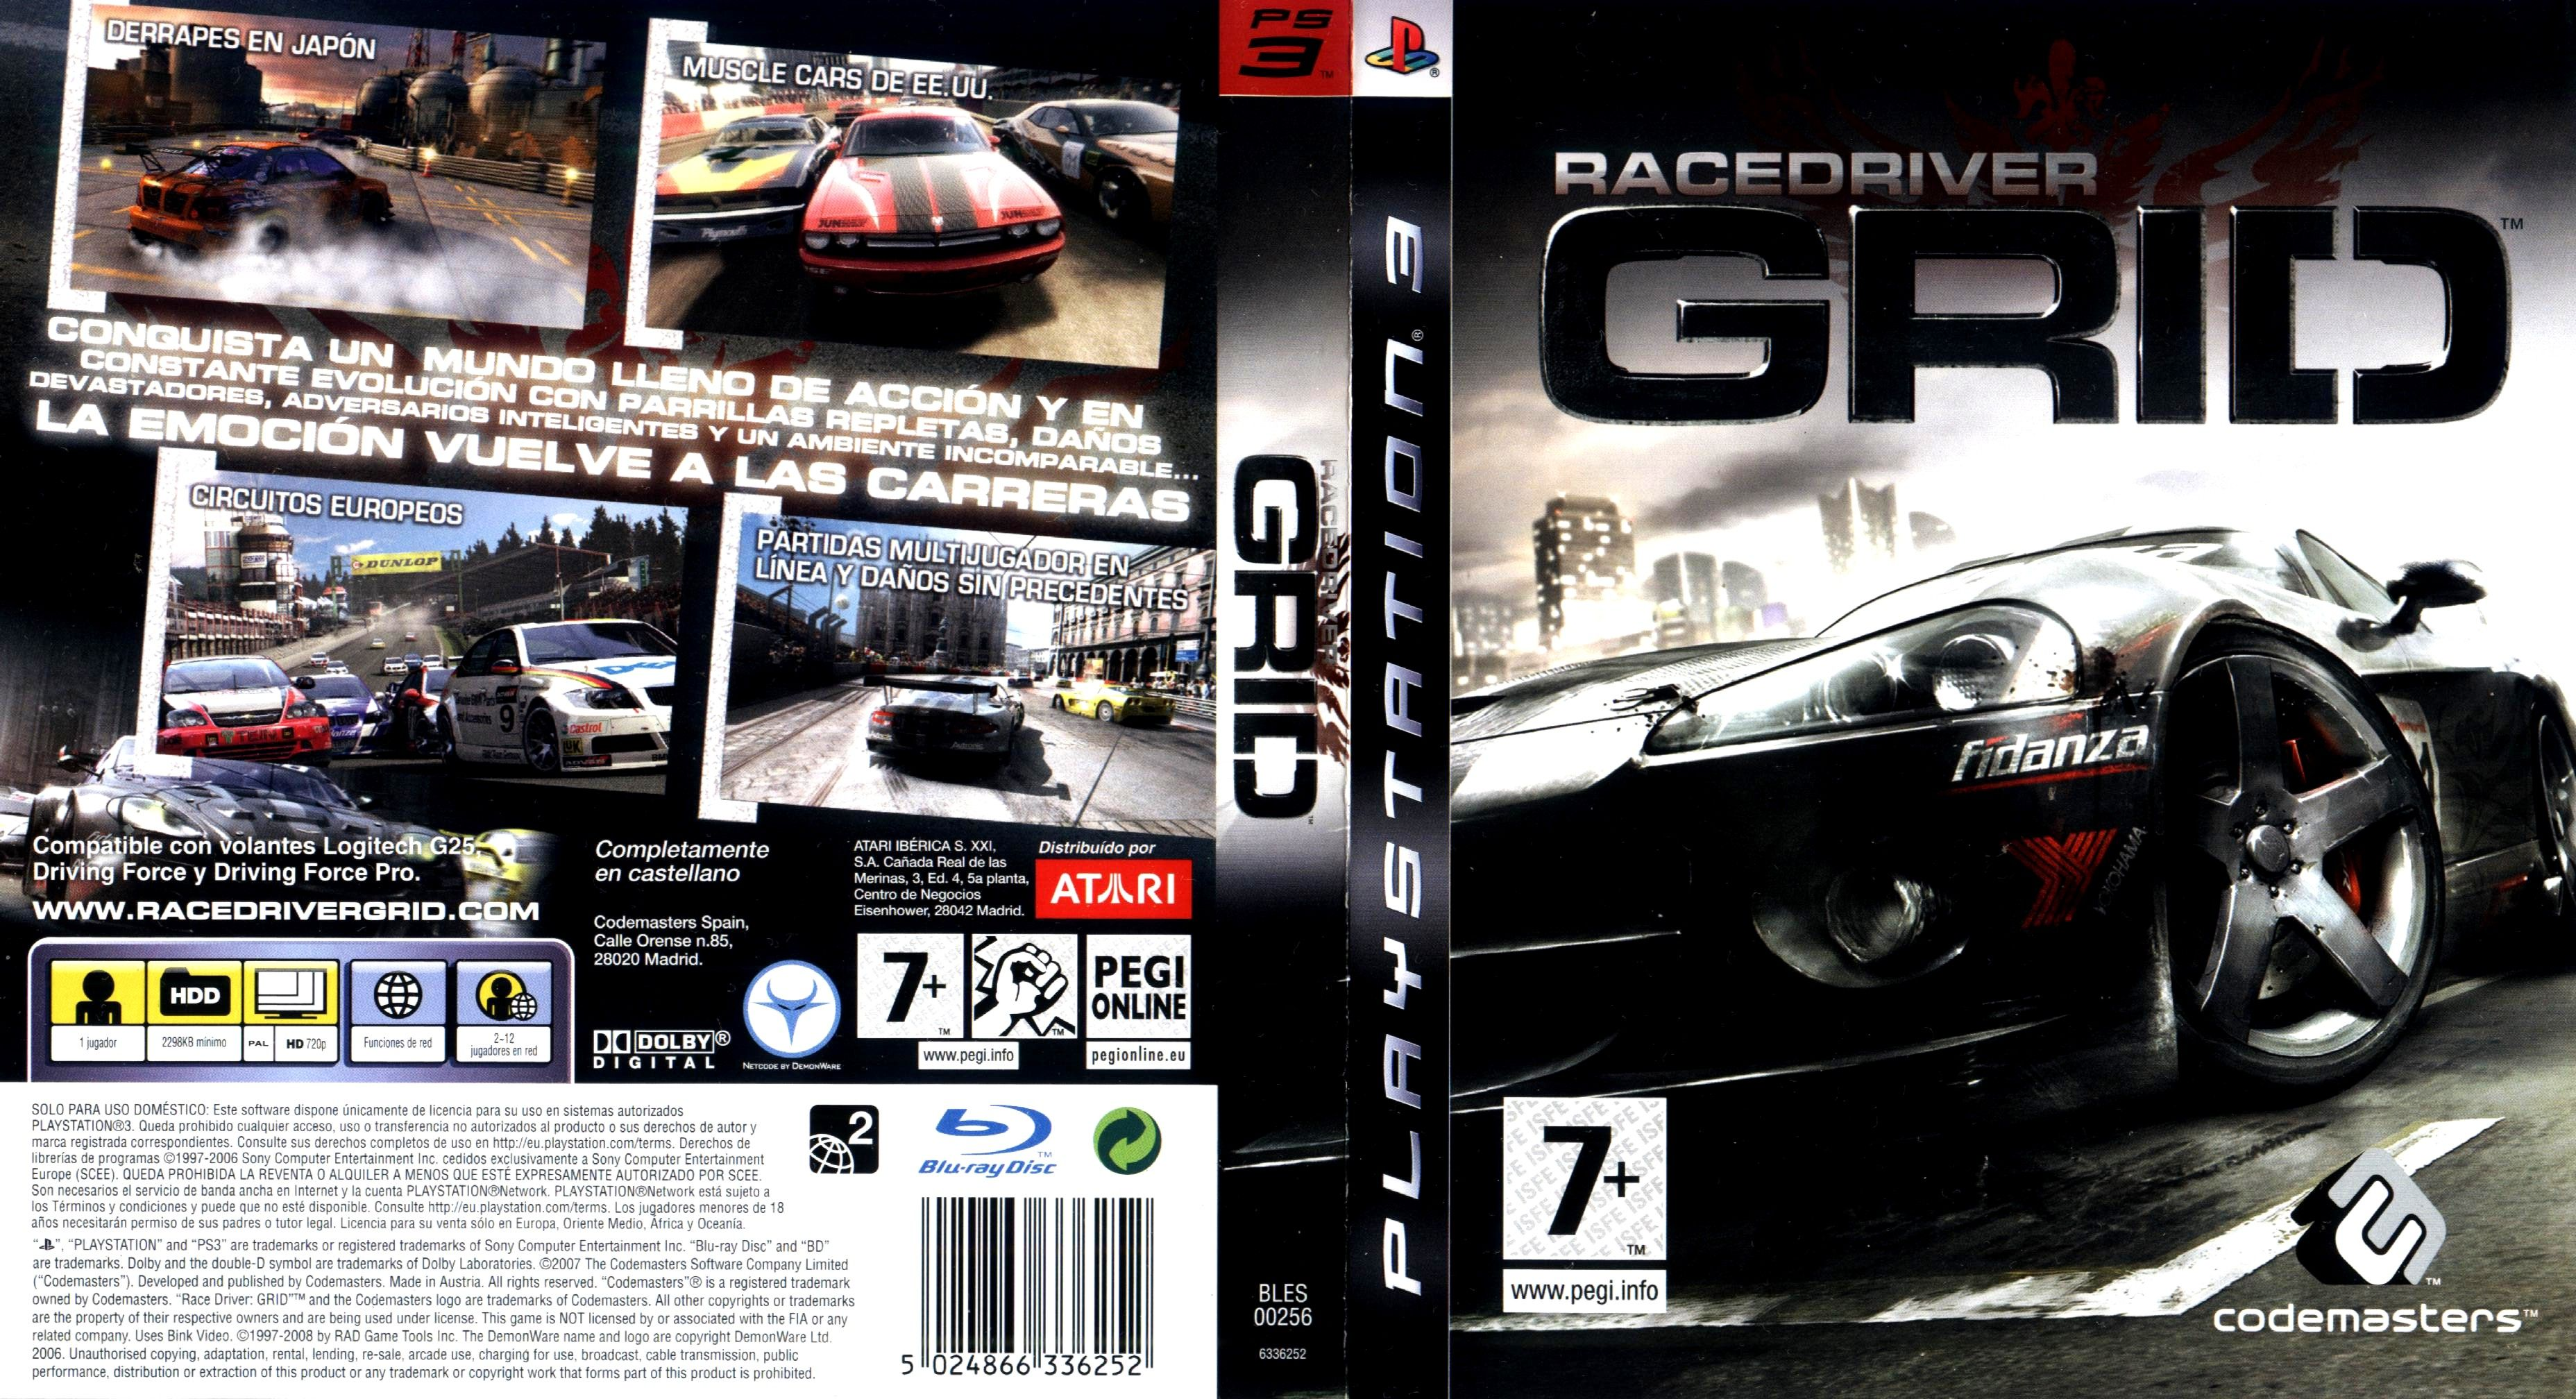 Want to know how to fix openal32dll is missing error in games like dirt 3, grid